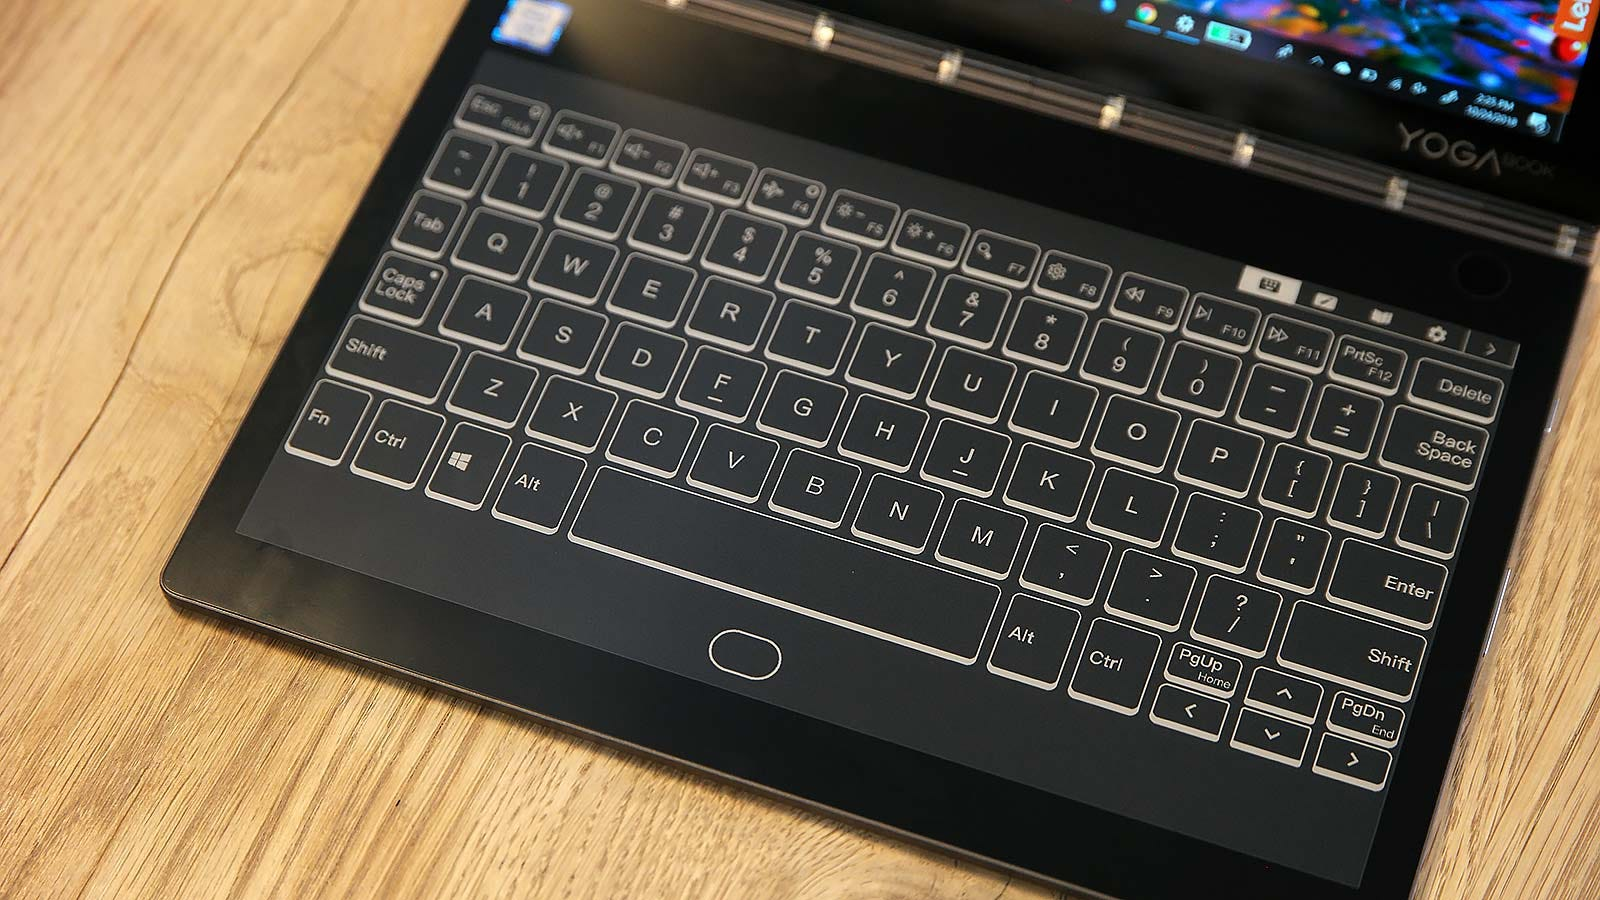 Here's the Modern keyboard layout. Note how there's no touchpad.